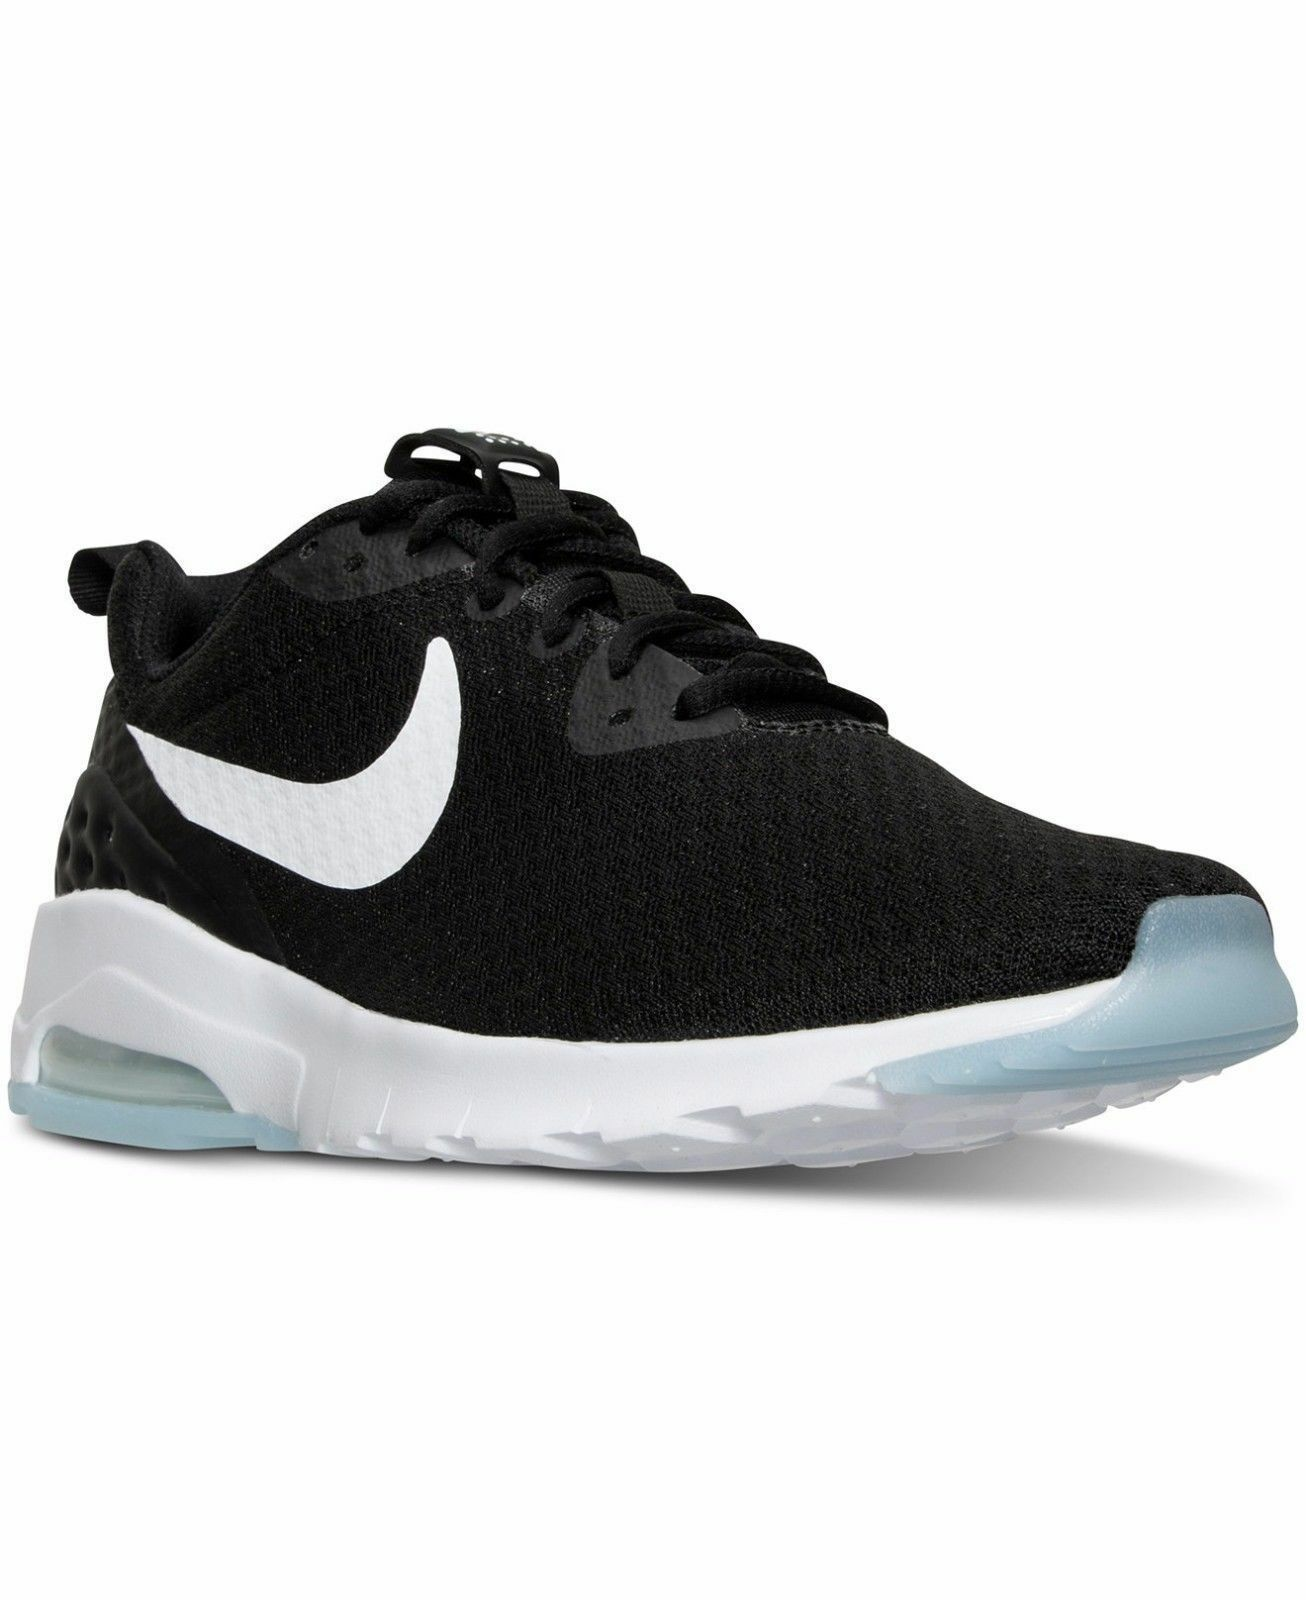 hot sale online ff9b5 b11c2 Men s Nike Air Max Motion LW LW LW Black White Sizes 8-12 New